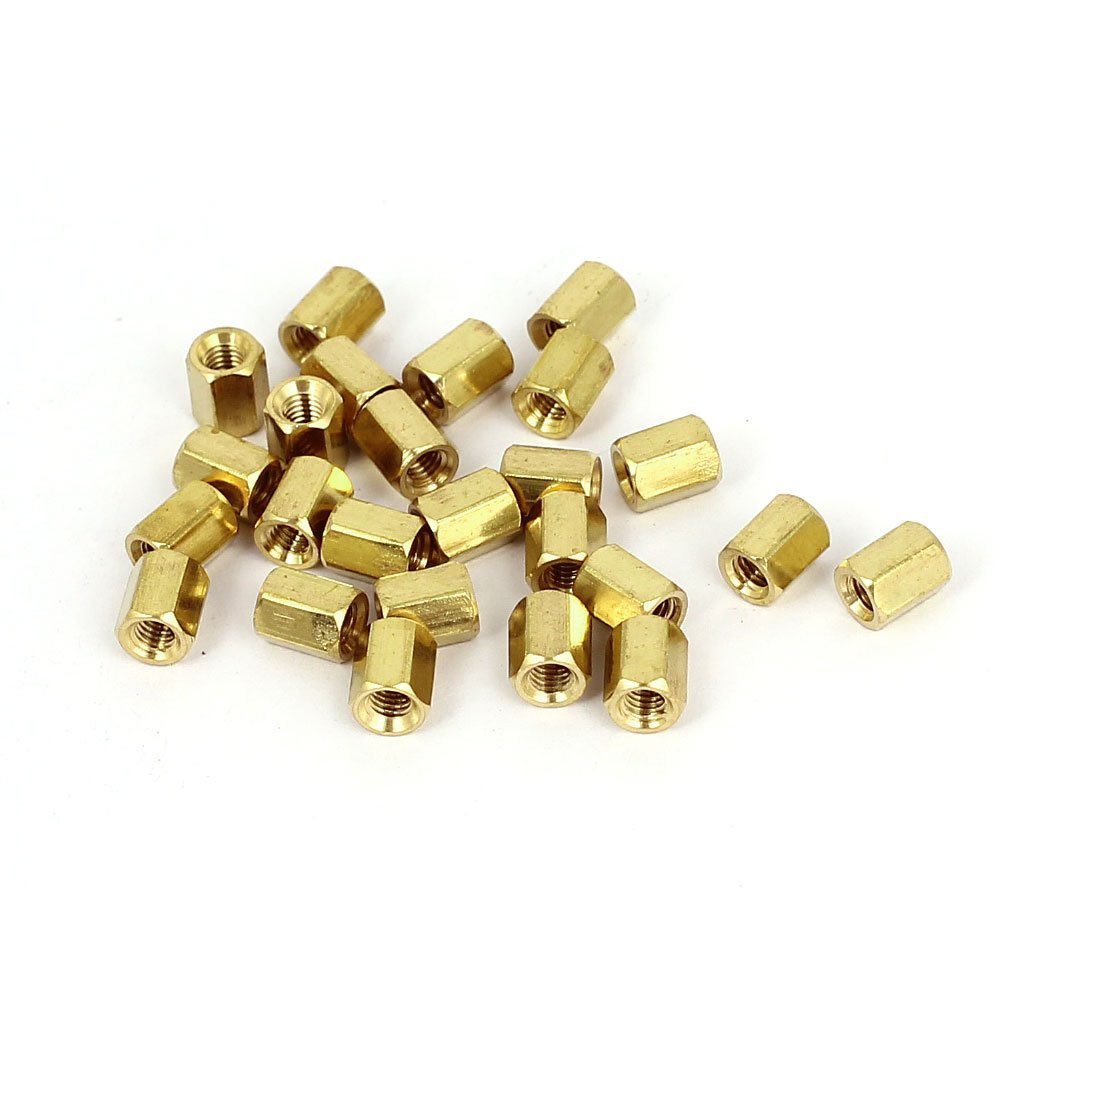 Uxcell a15081800ux0069 Standoff Spacer M3 x 6Mm Female Threaded Brass Hex Standoff Pillar Spacer Nuts 25Pcs